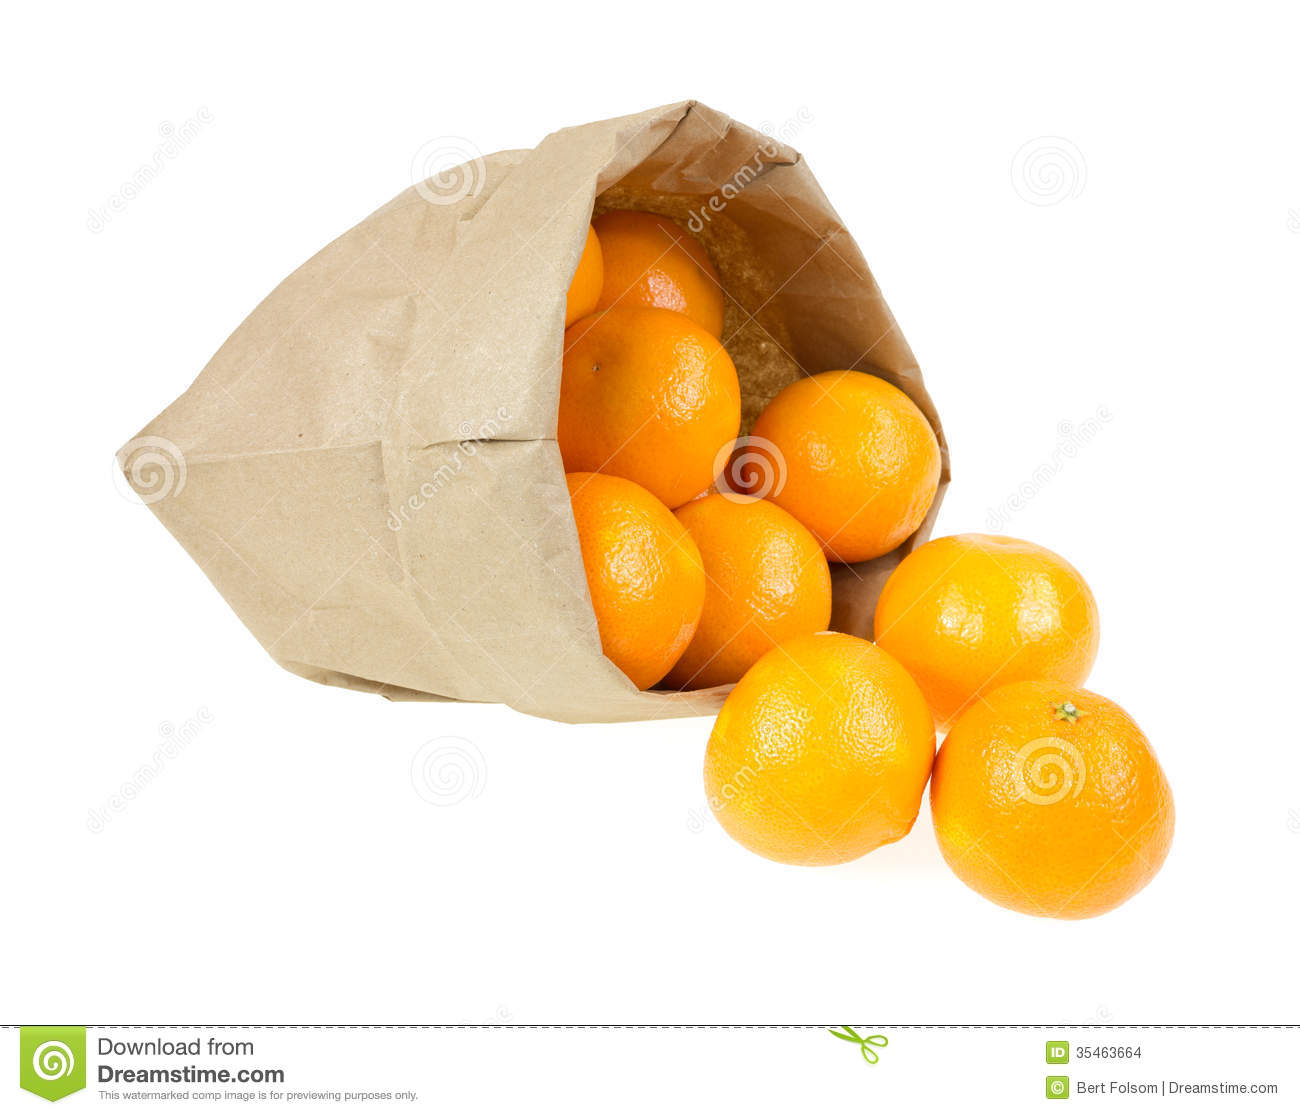 a bag of oranges essay Protective fruit wrapping  made in niigata japanthe company started manufacturing wax coated papers for umbrellas over 300years ago  on the color of the bag.